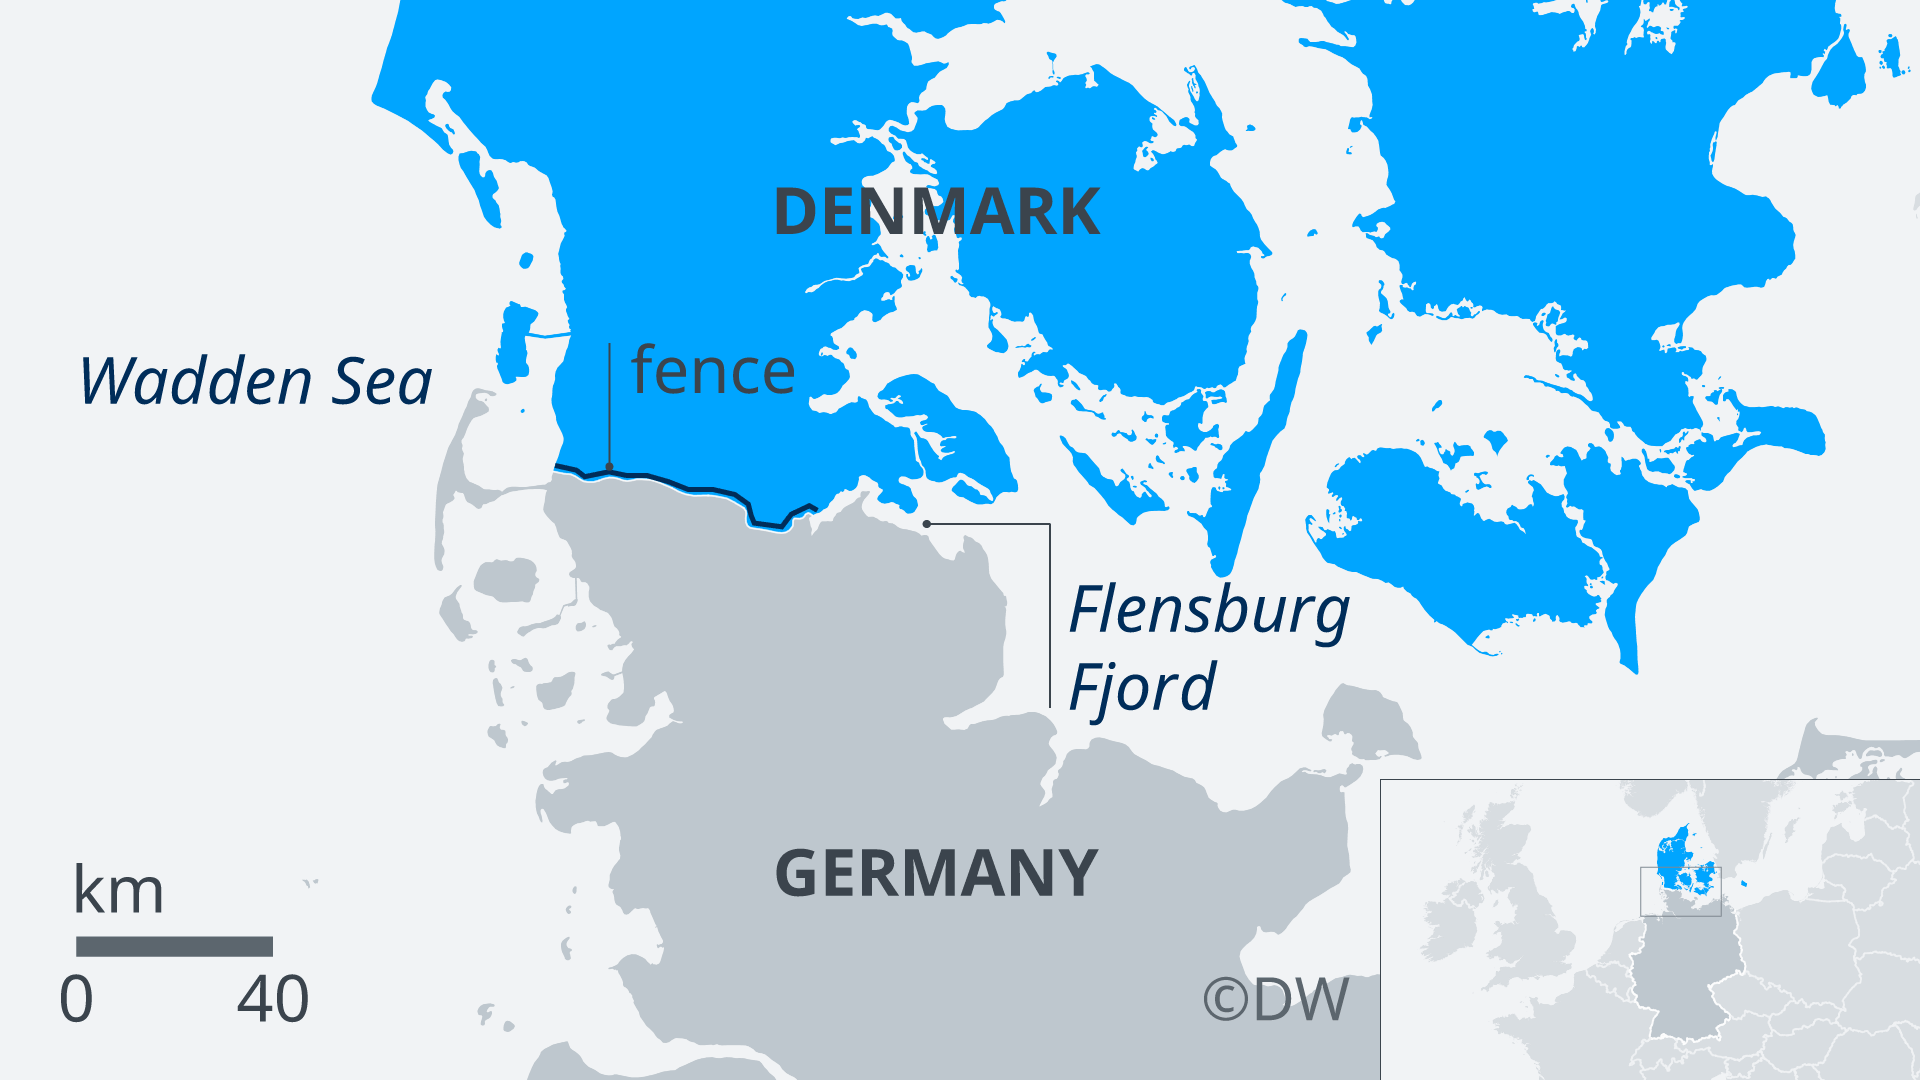 Map showing where the fence is